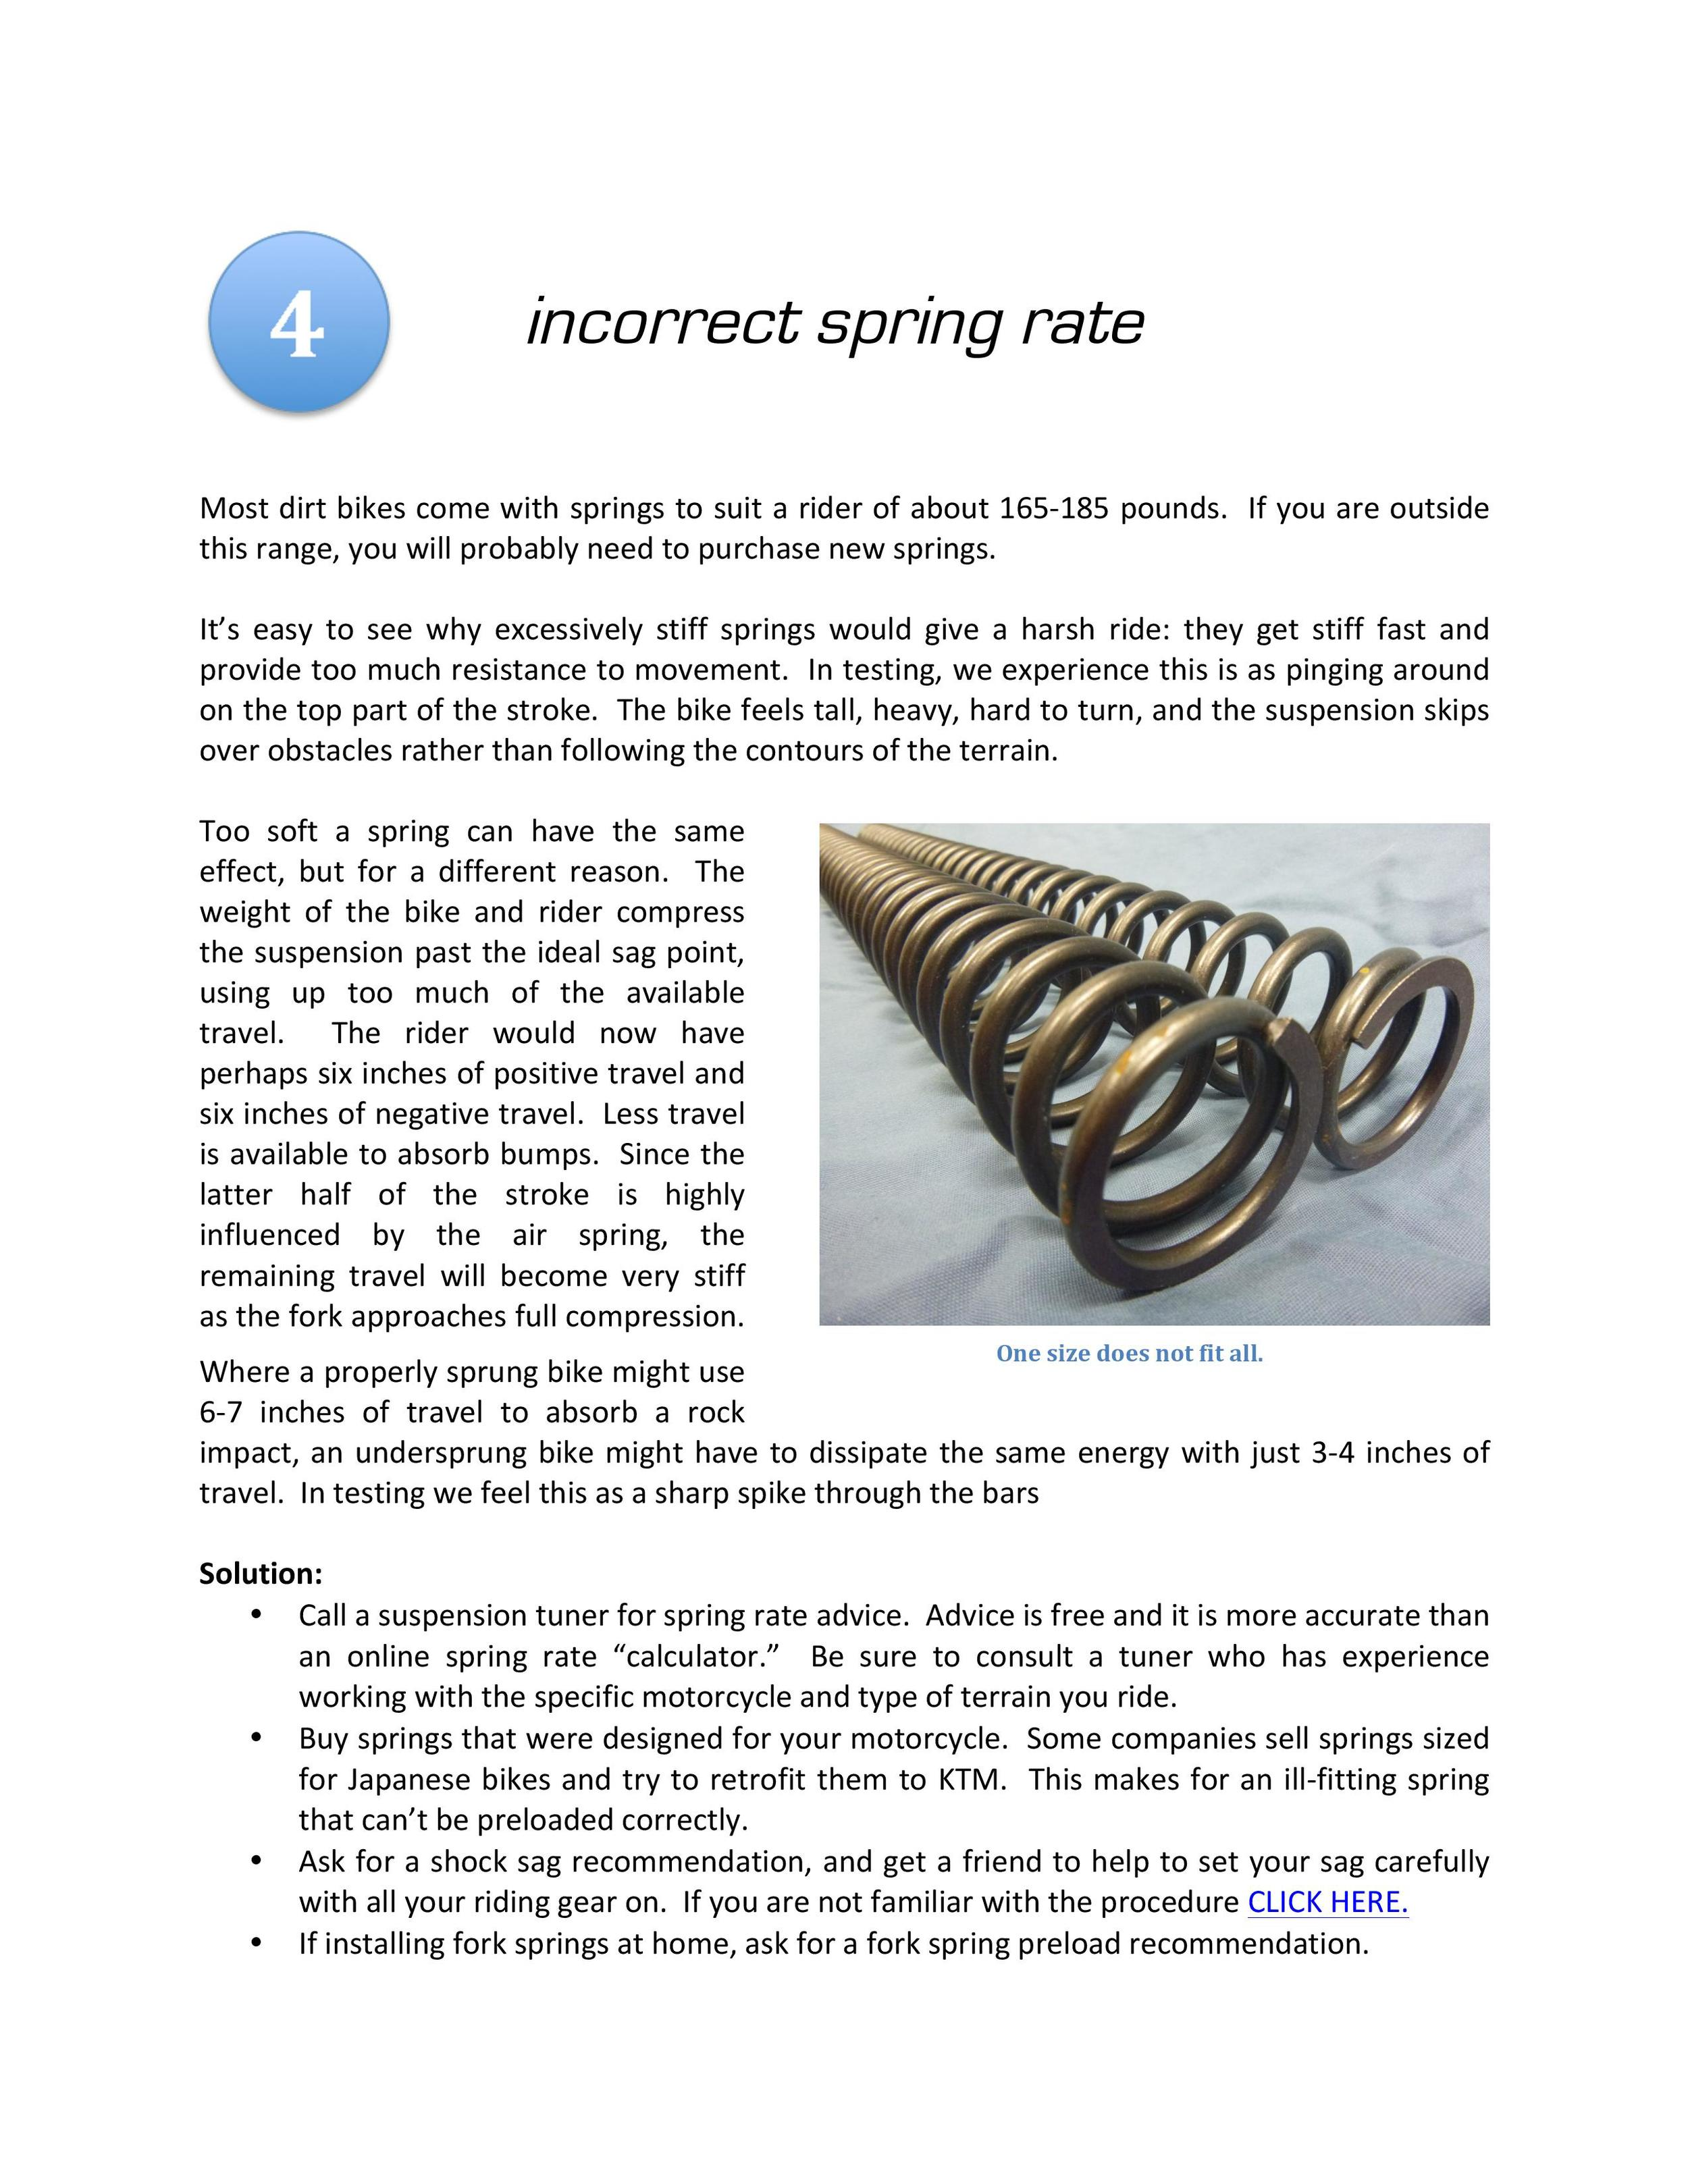 TOP 10 REASONS YOUR SUSPENSION IS HARSH-page-007.jpg